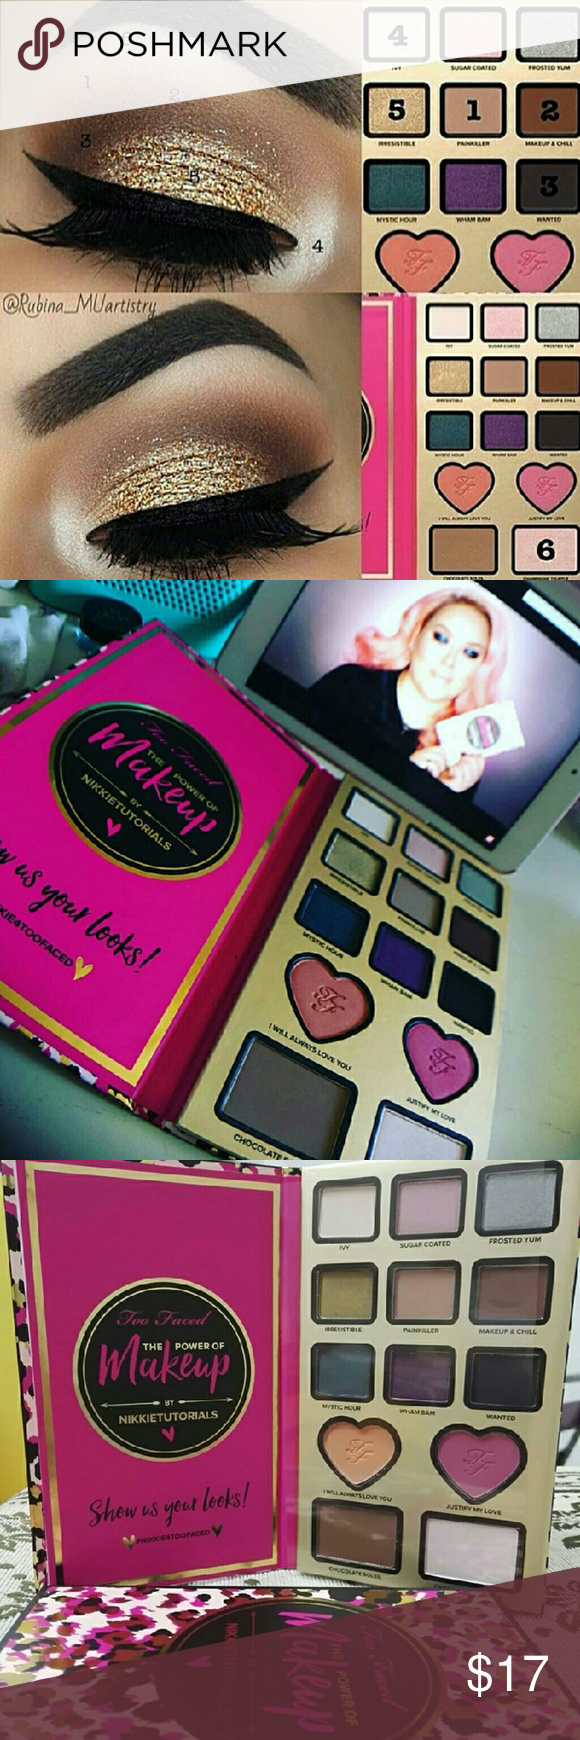 Too Faced Nikkie Tutorials Eyeshadow Pallete Too Faced The